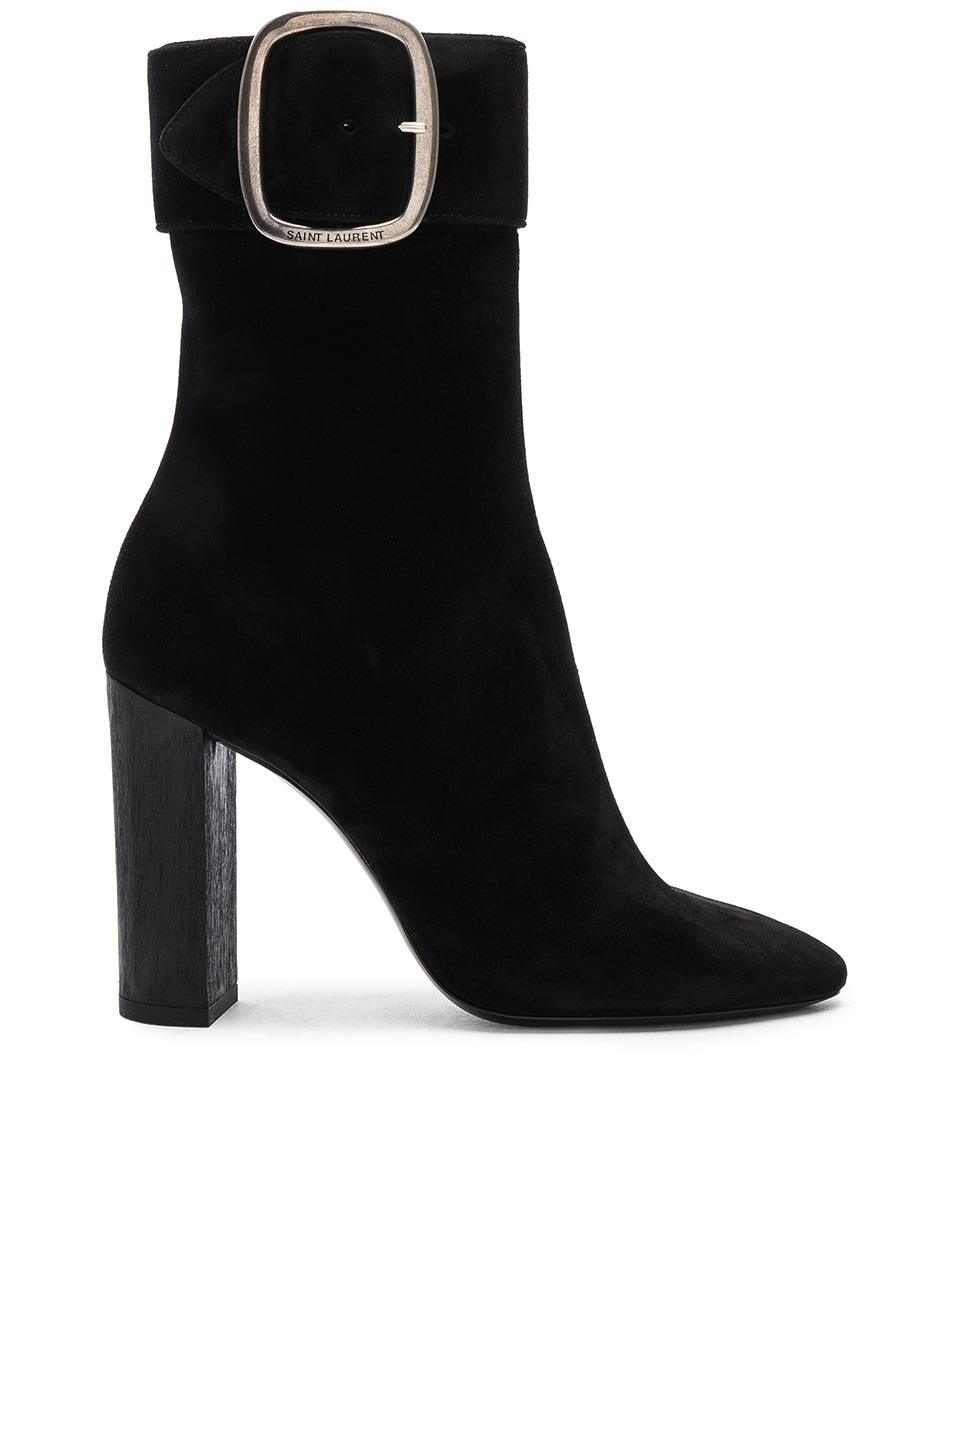 Image 1 of Saint Laurent Suede Joplin Buckle Boots in Black